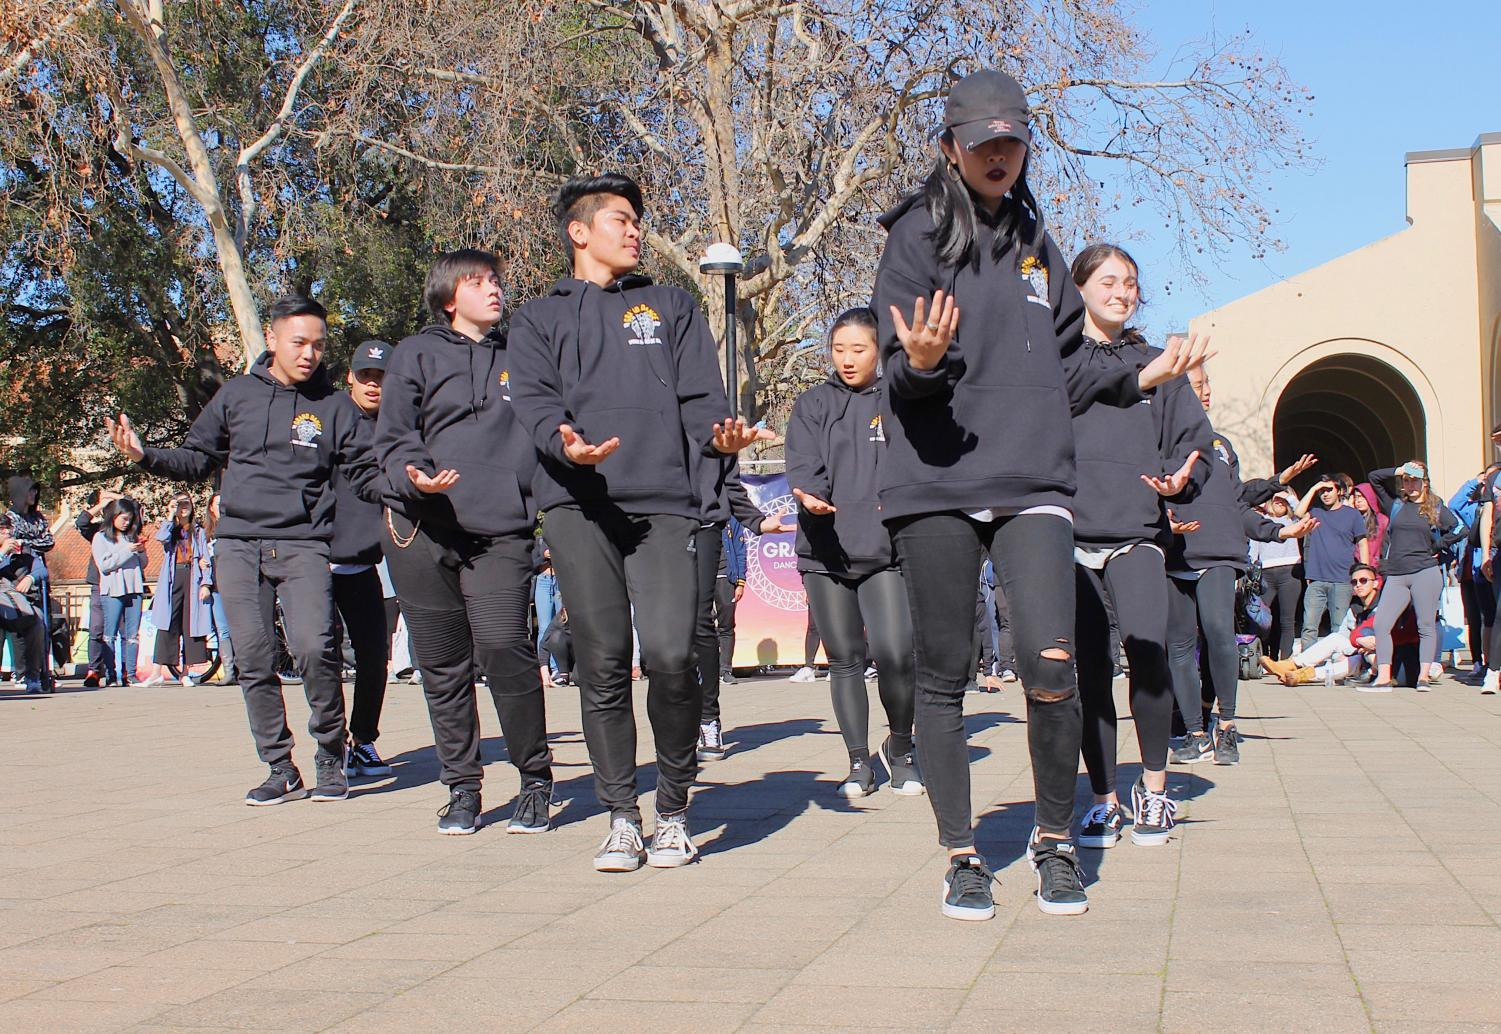 The+urban+dance+team%2C+Grand%2C+performs+at+Club+Day+.